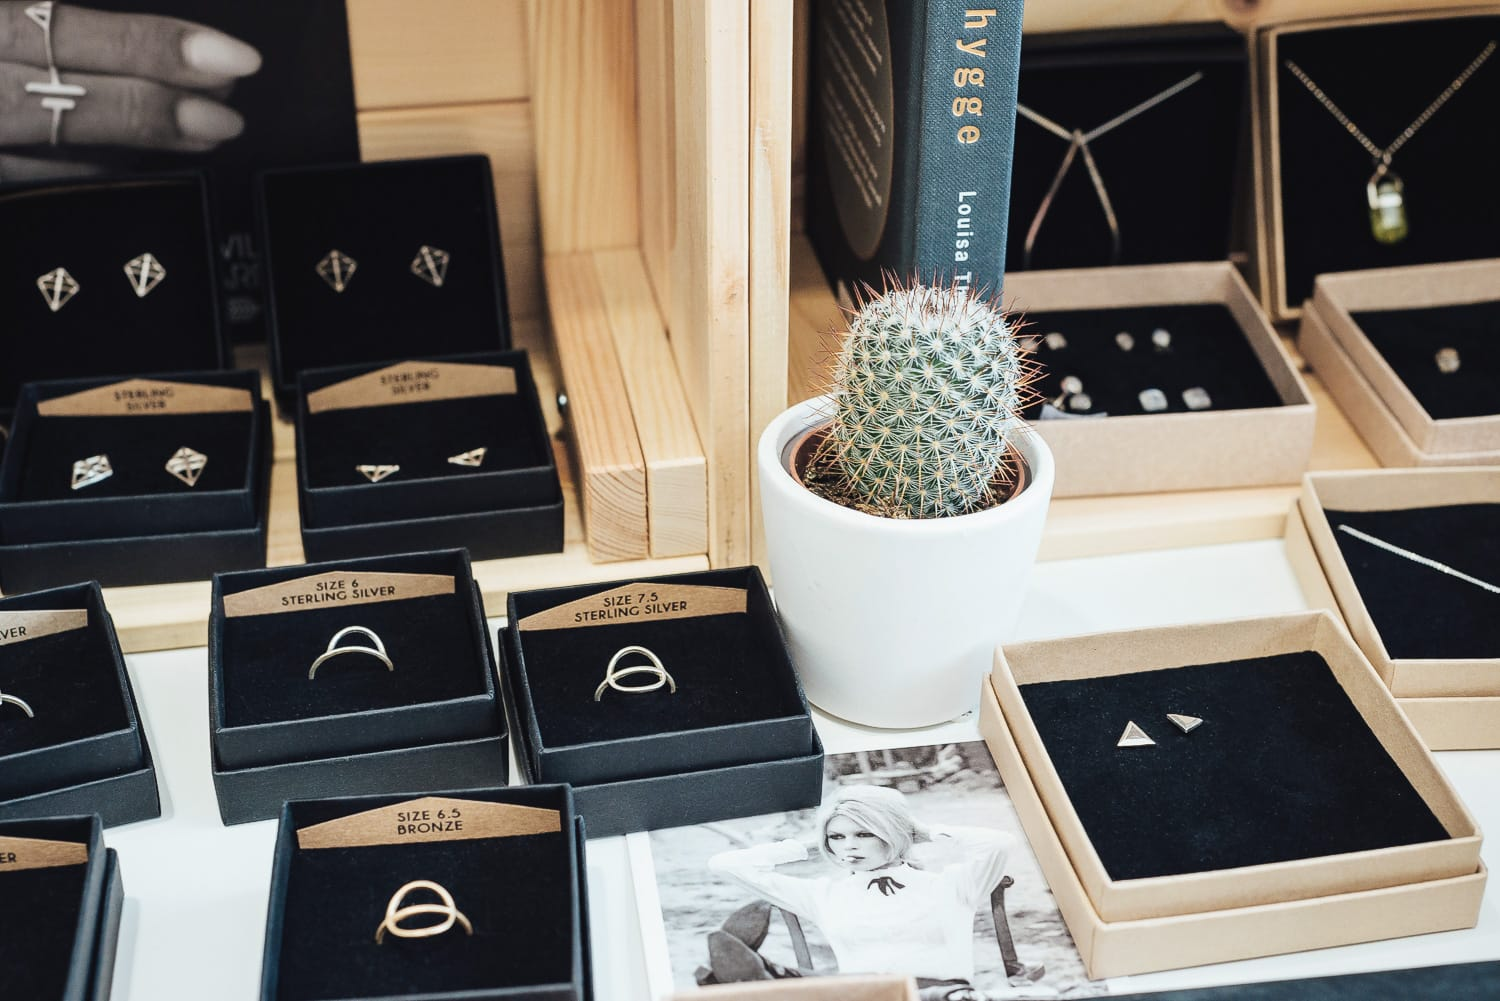 jewellery at the Ecosphere store in Stockholm